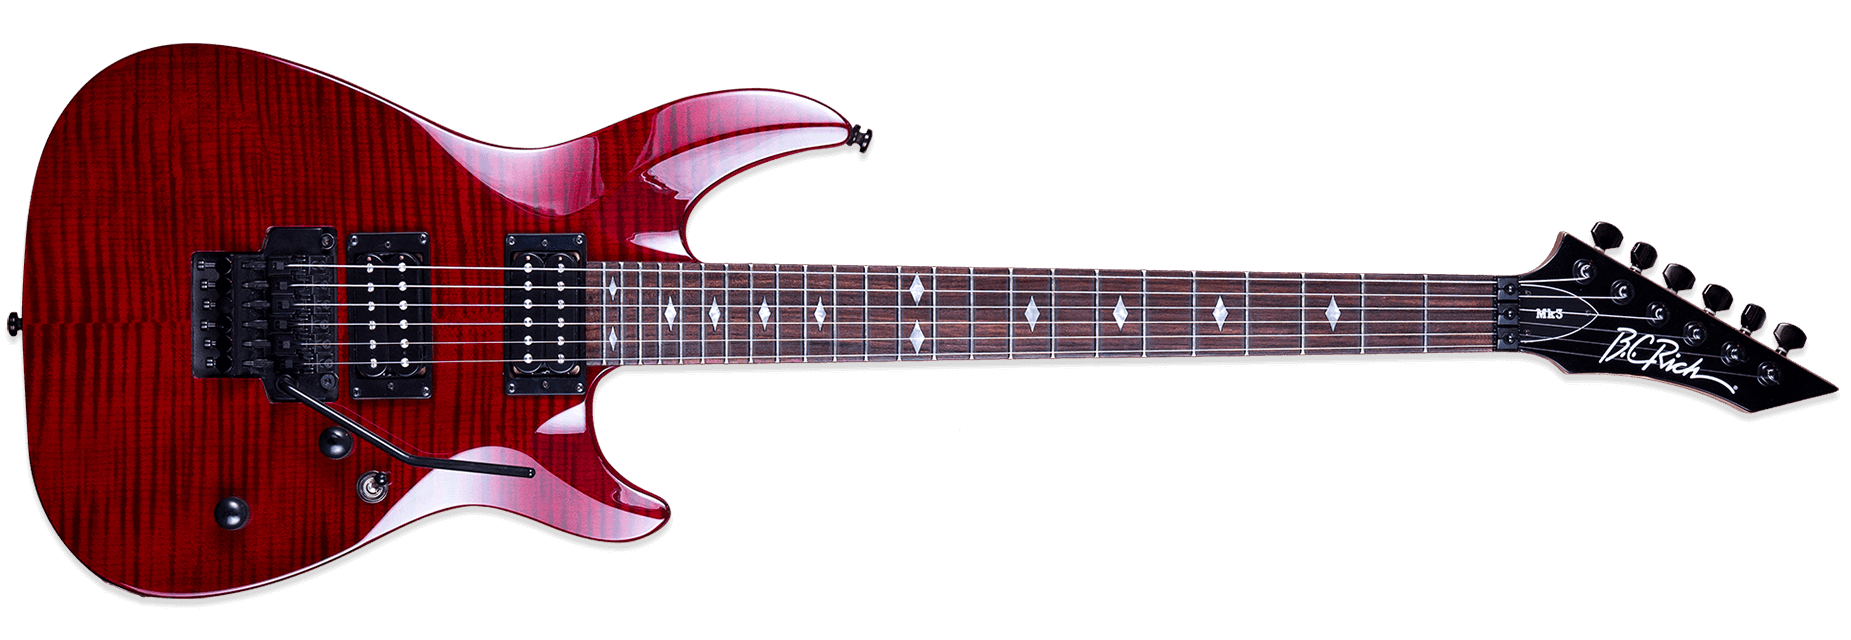 BC Rich Mk3 Villain Transparent Black Cherry